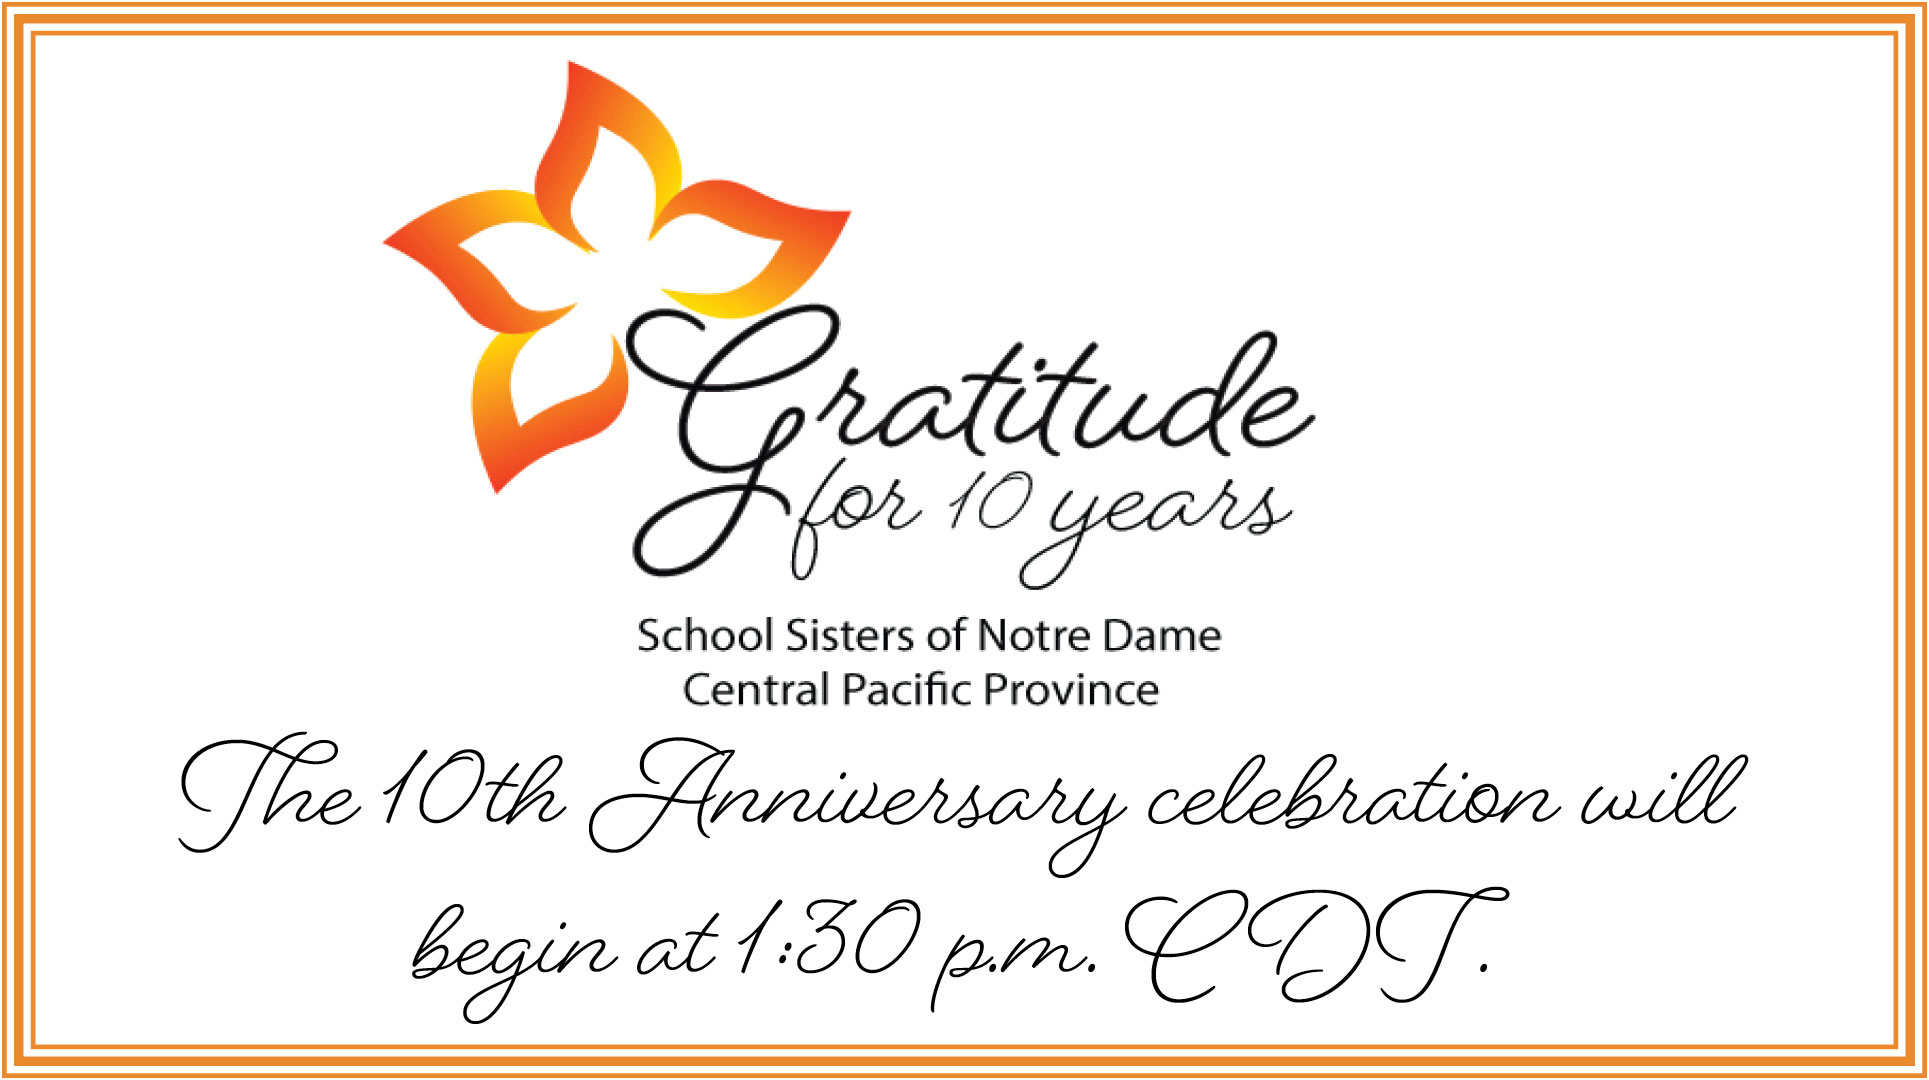 10th Anniversary logo - Gratitude for 10 years. The image is the start to the video celebration being held on Saturday, June 12, 2021 at 1:30 p.m., CDT.